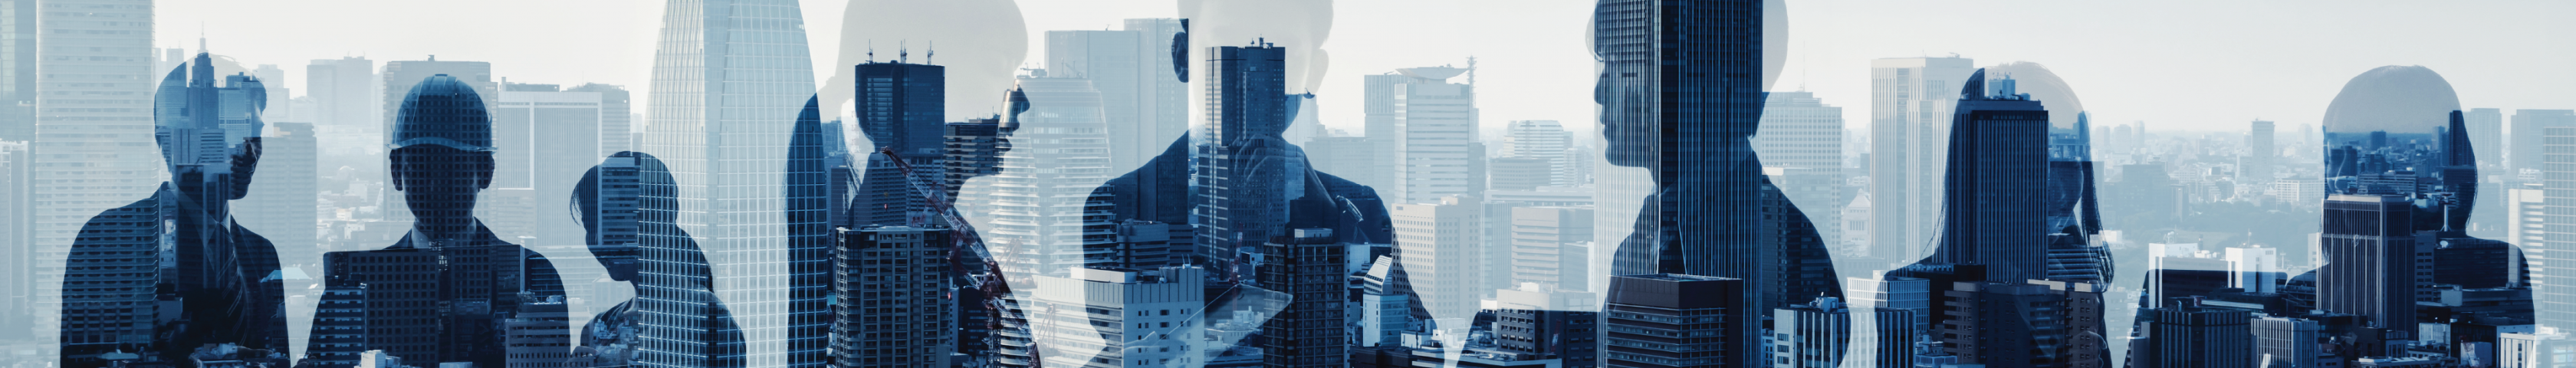 Business people silhouette over background of city skyline